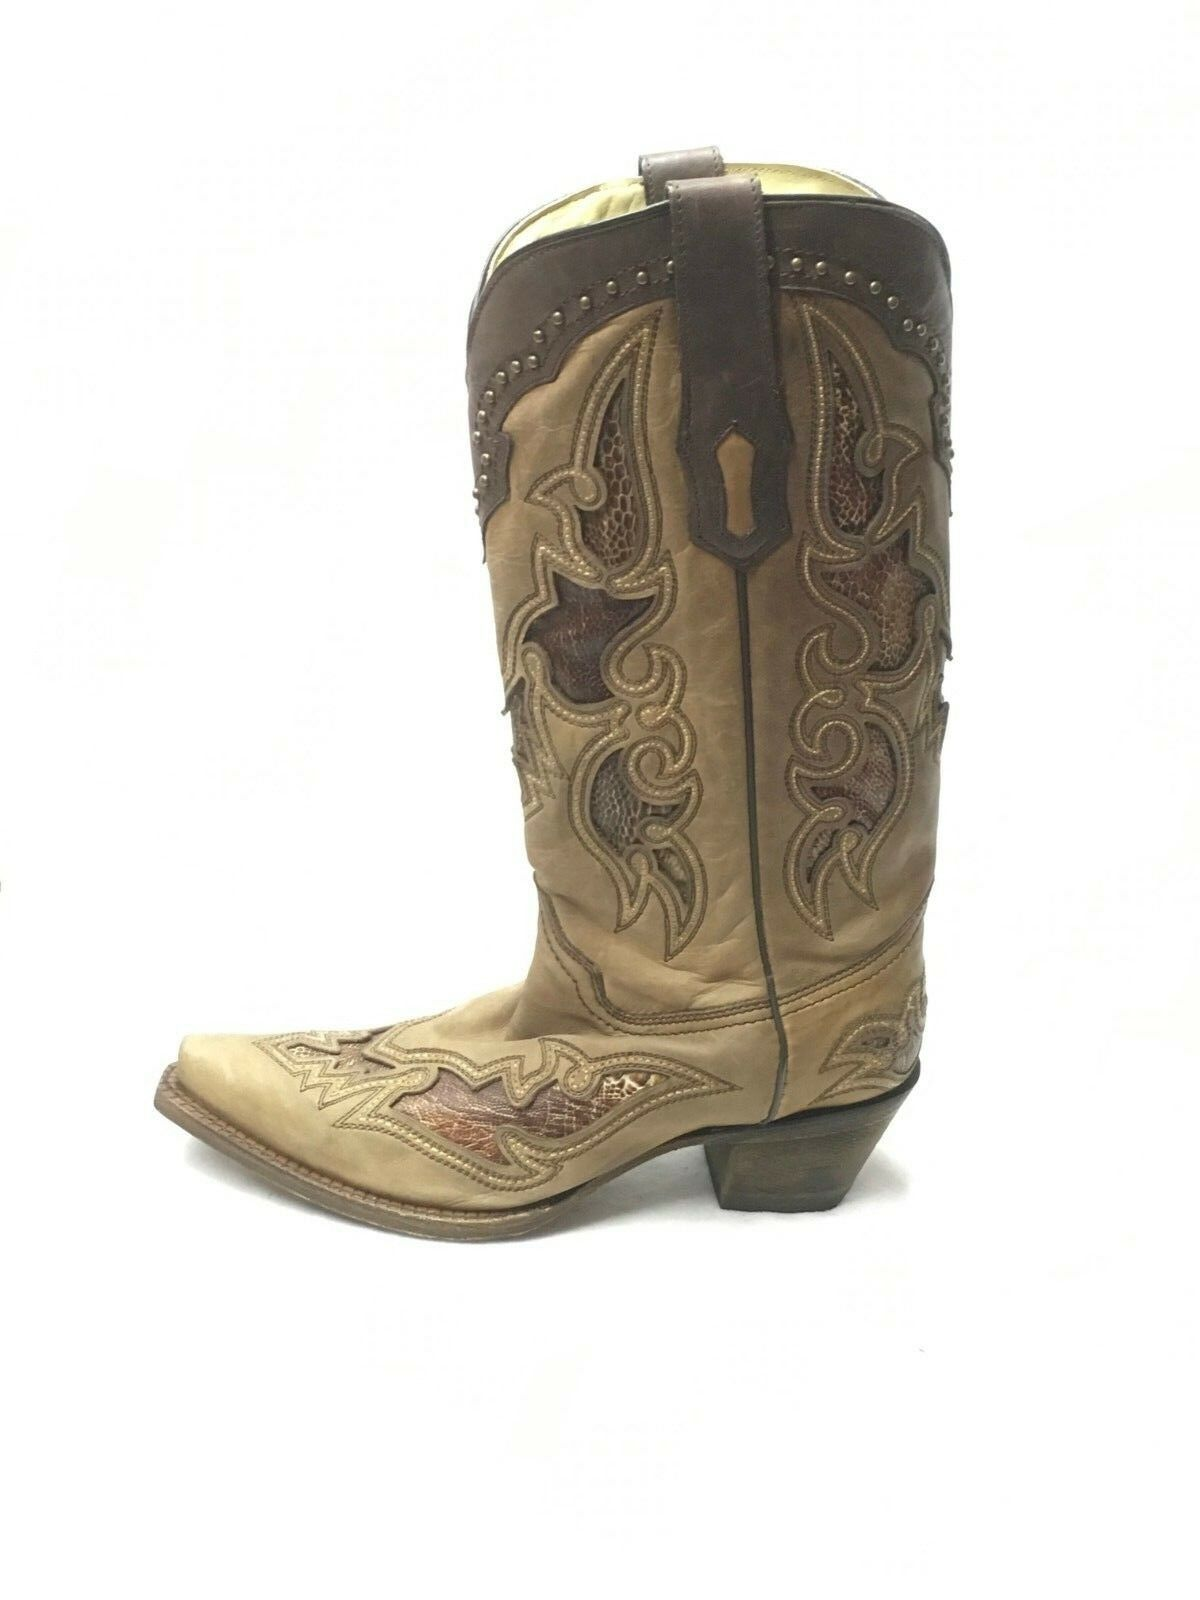 Ladies Corral Corral Corral Boots-Antique Saddle w Ostrich Leg Inlay, Style A2964 c9b09f